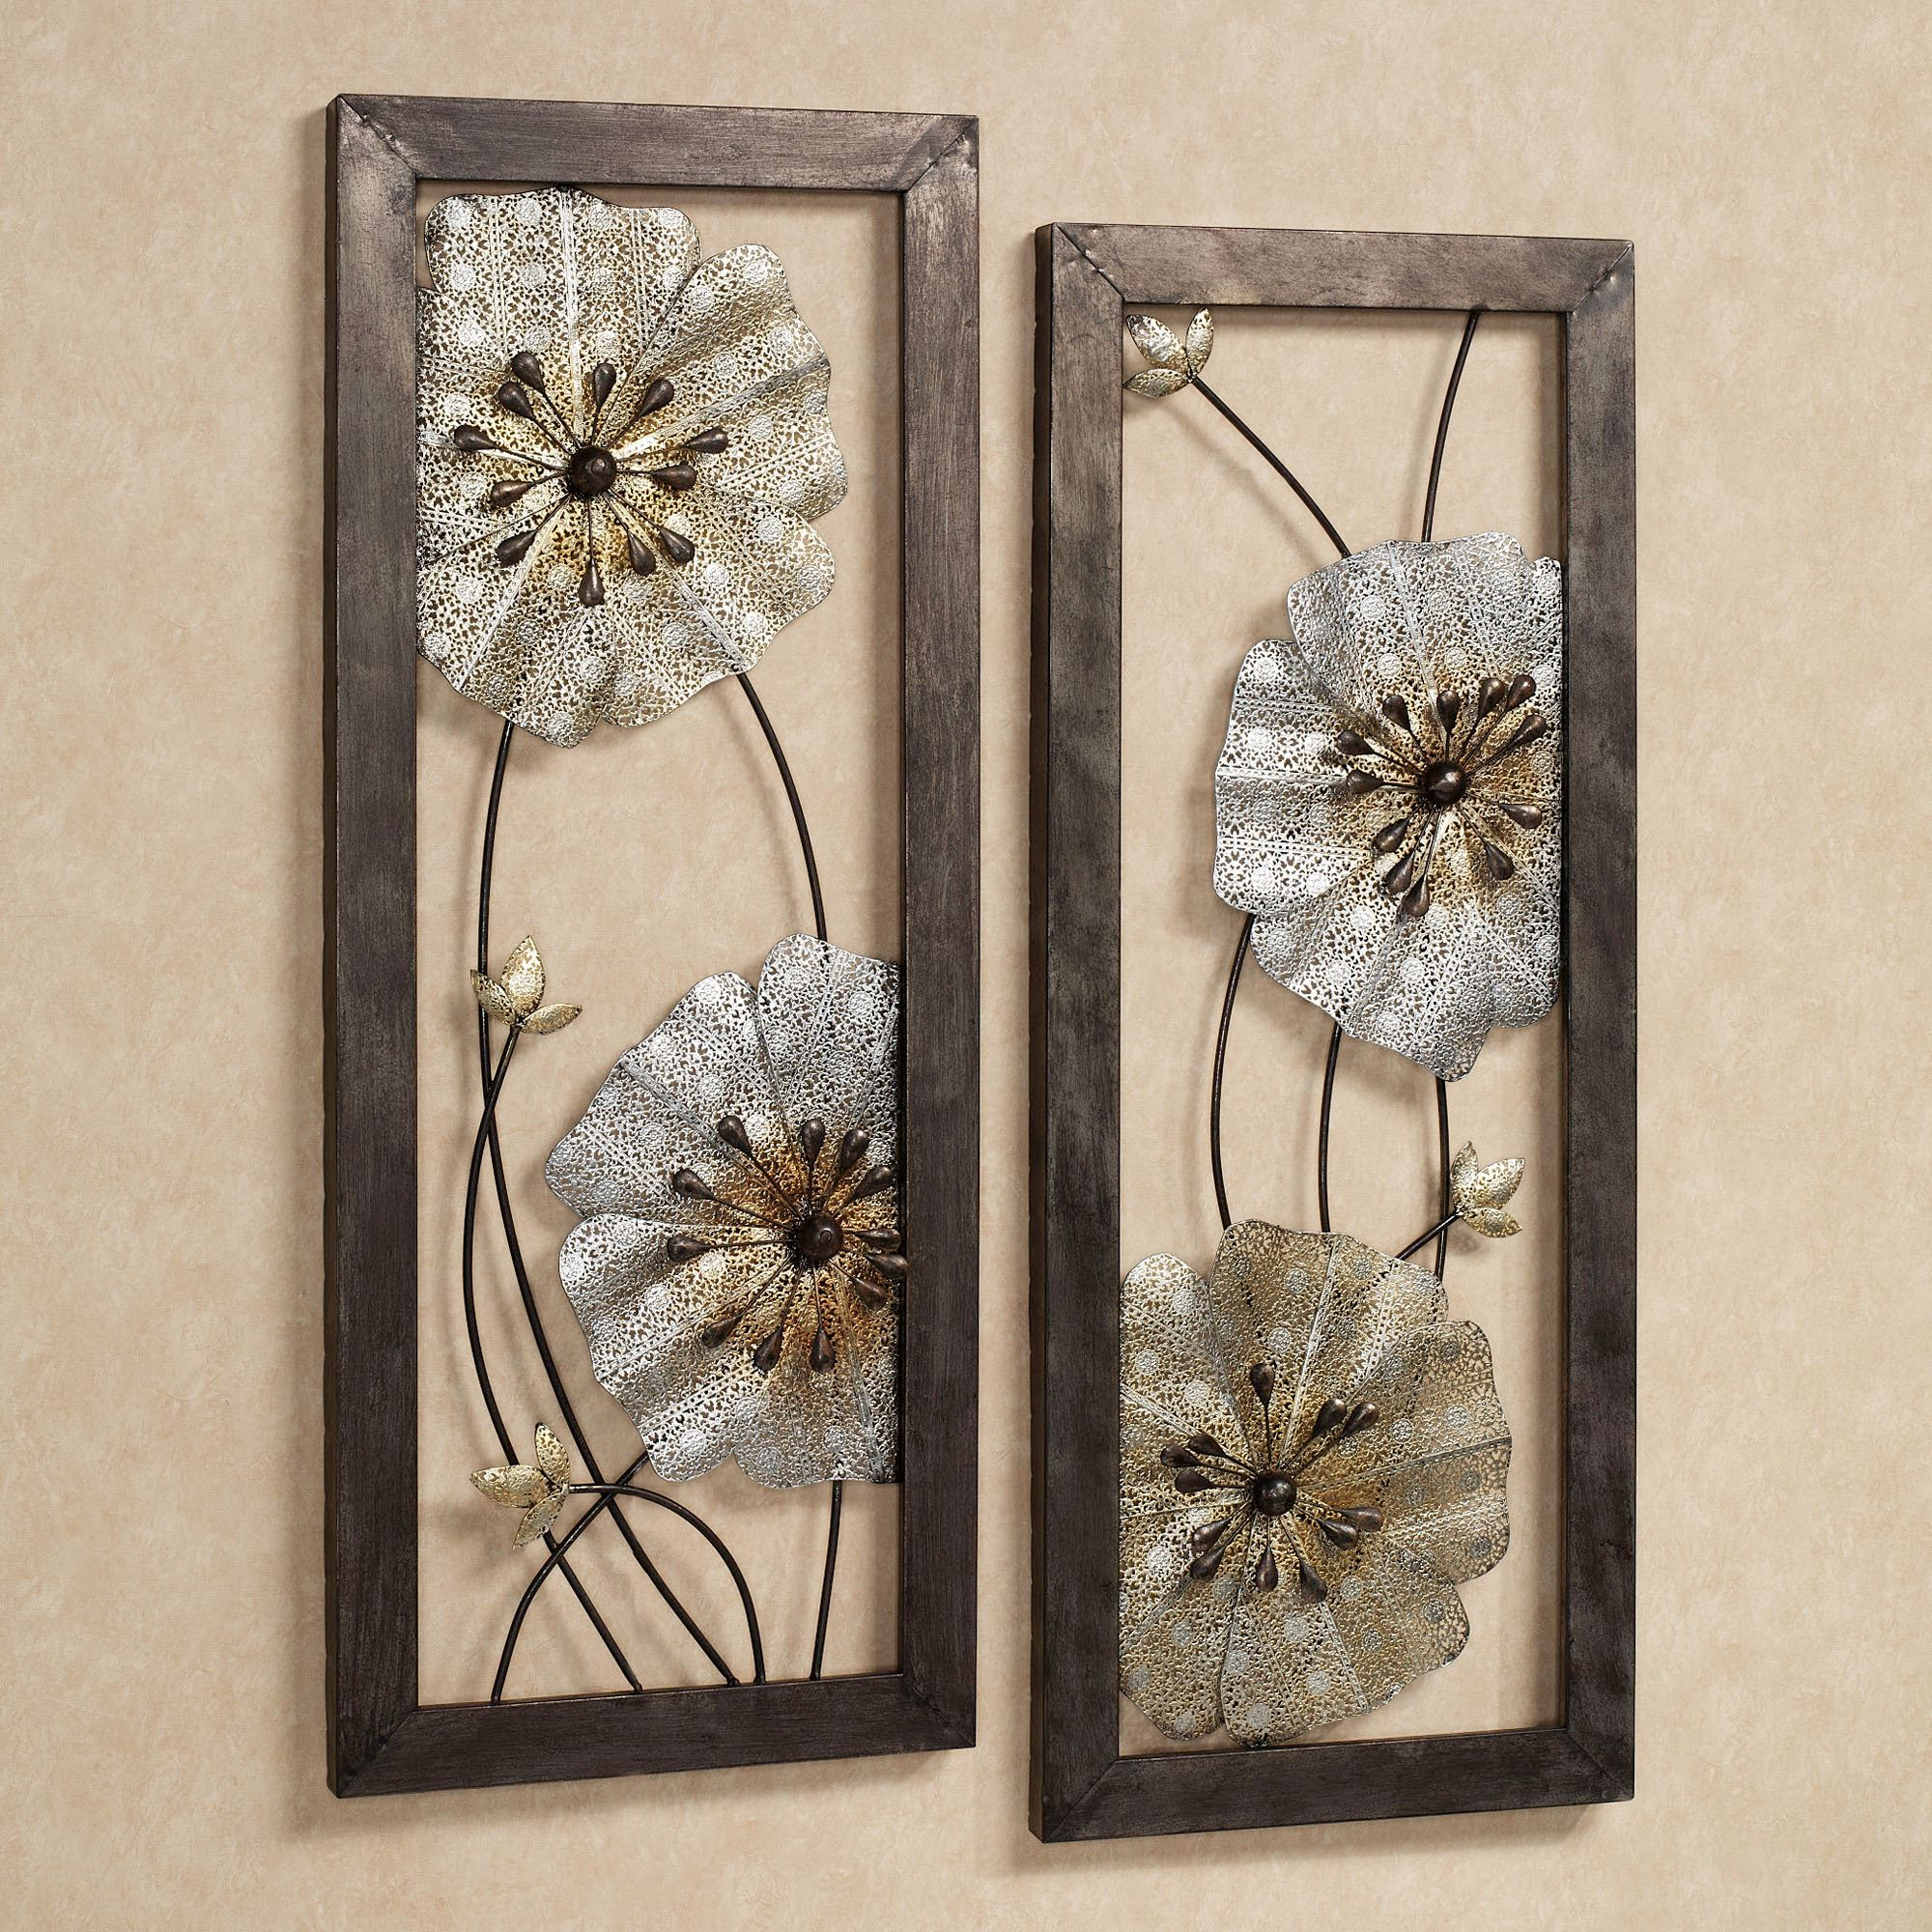 FREE SHIPPING. Malacia Floral Metal Wall Art ... & Malacia Openwork Floral Metal Wall Art Set